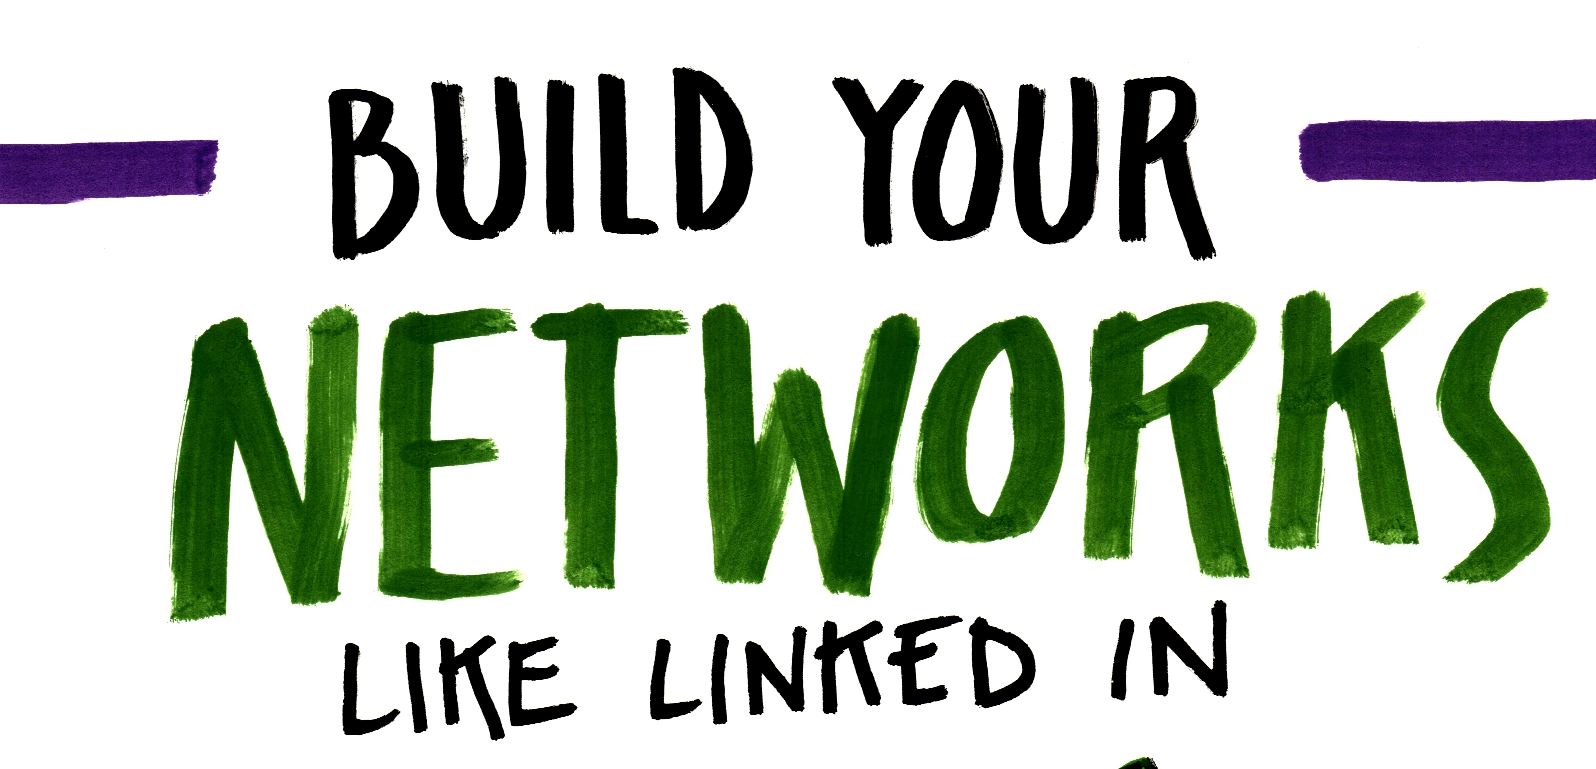 build your networks